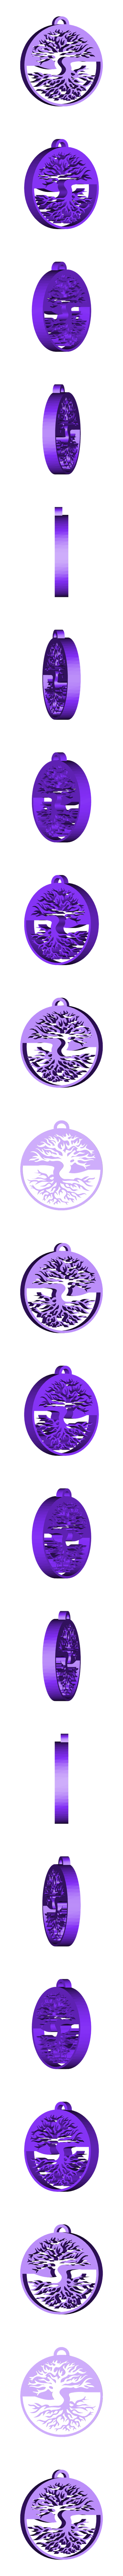 tree of life.STL Download free STL file Tree of Life • 3D printer model, nascarbob